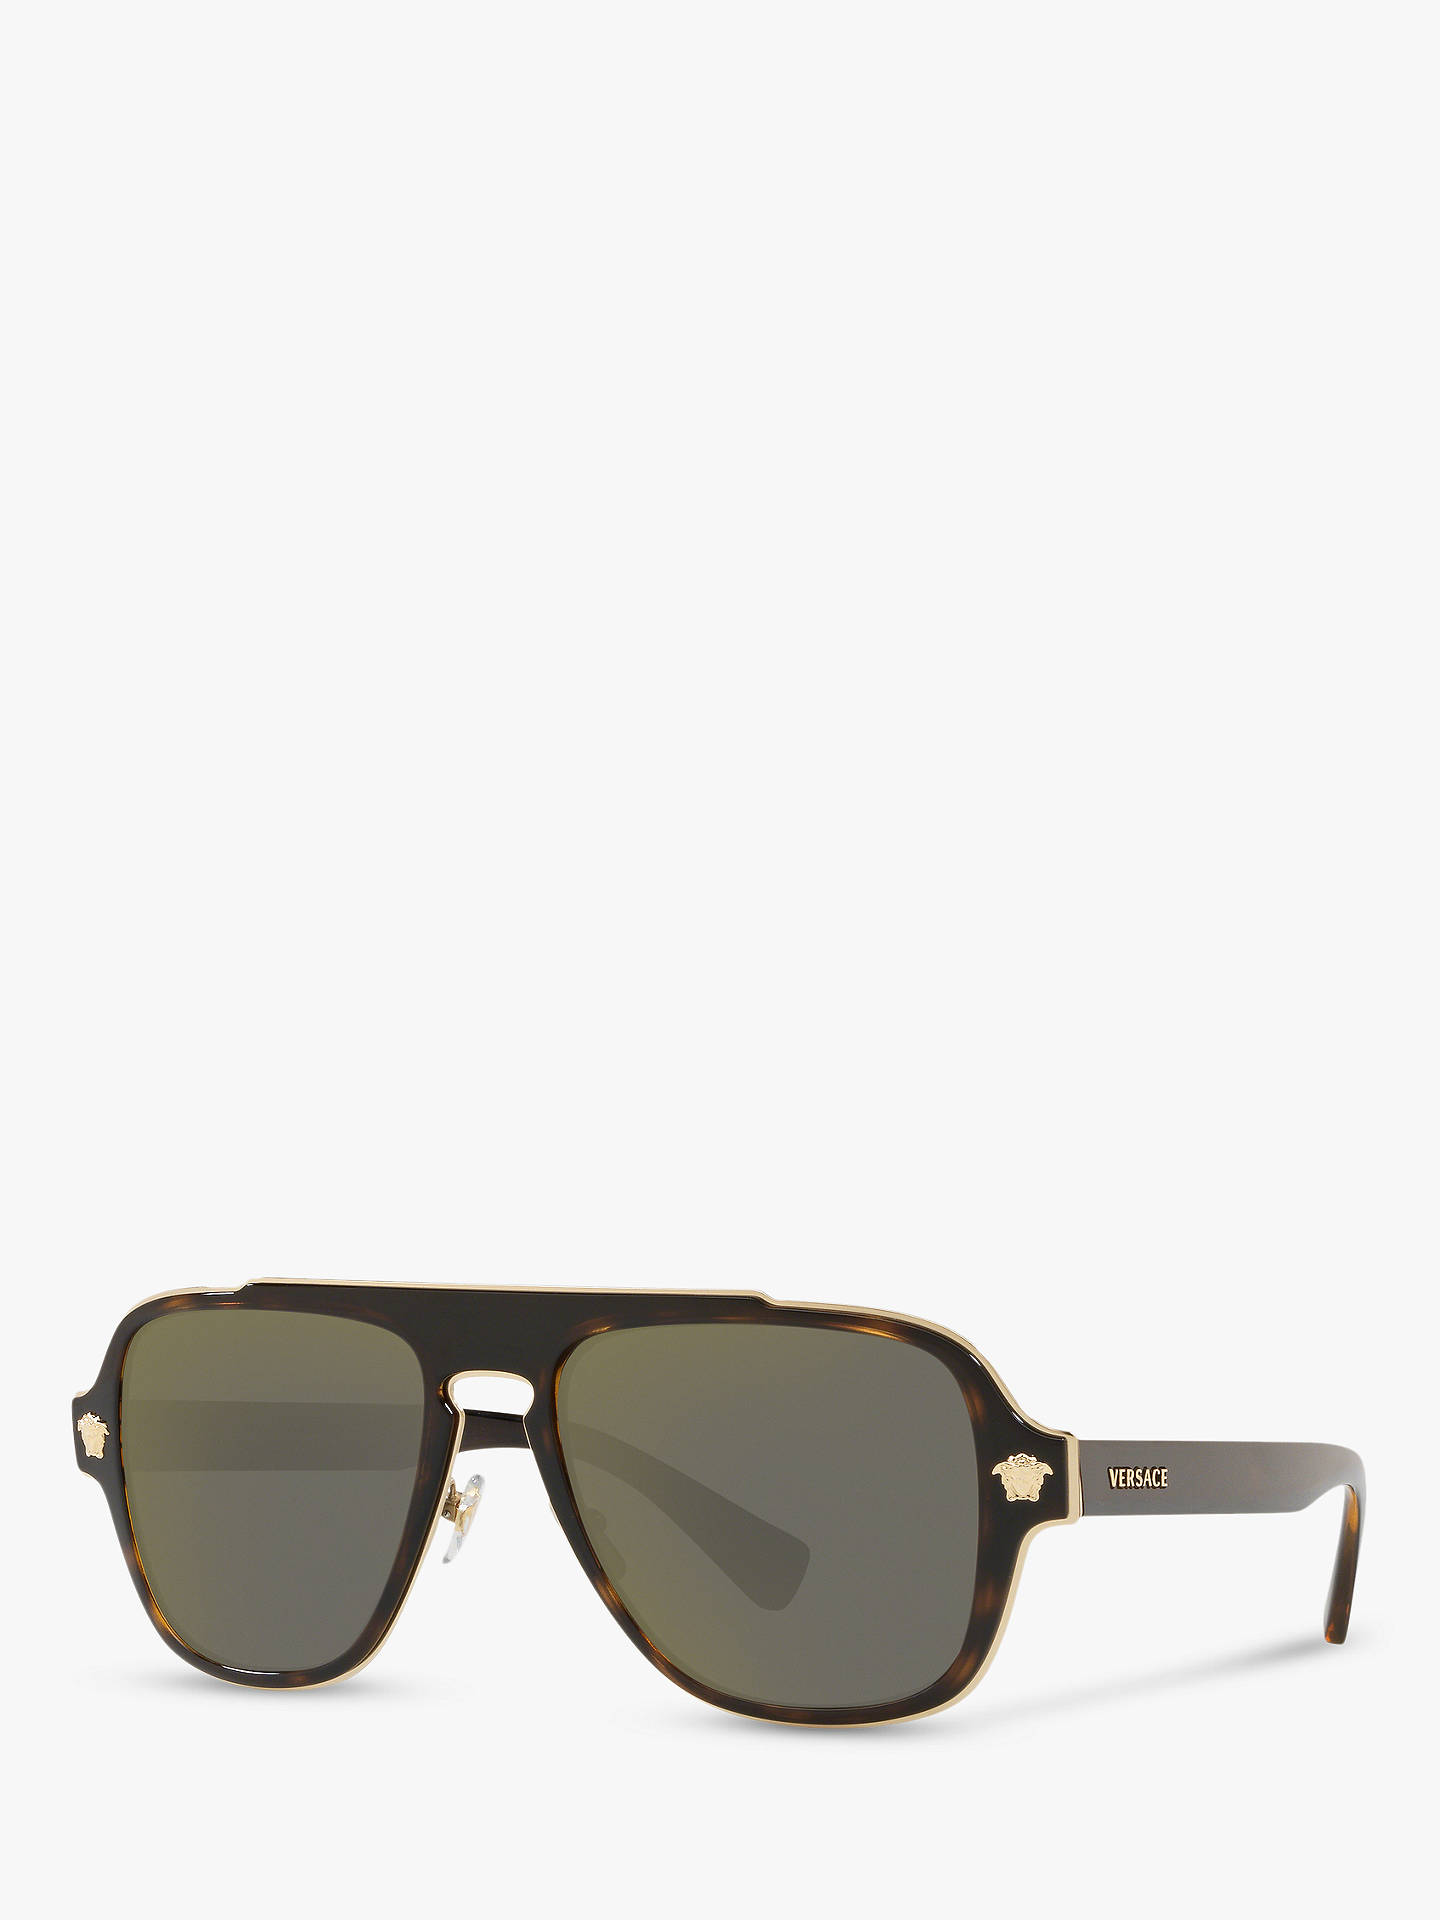 75dd0b0b35d Buy Versace VE2199 Men s Geometric Sunglasses